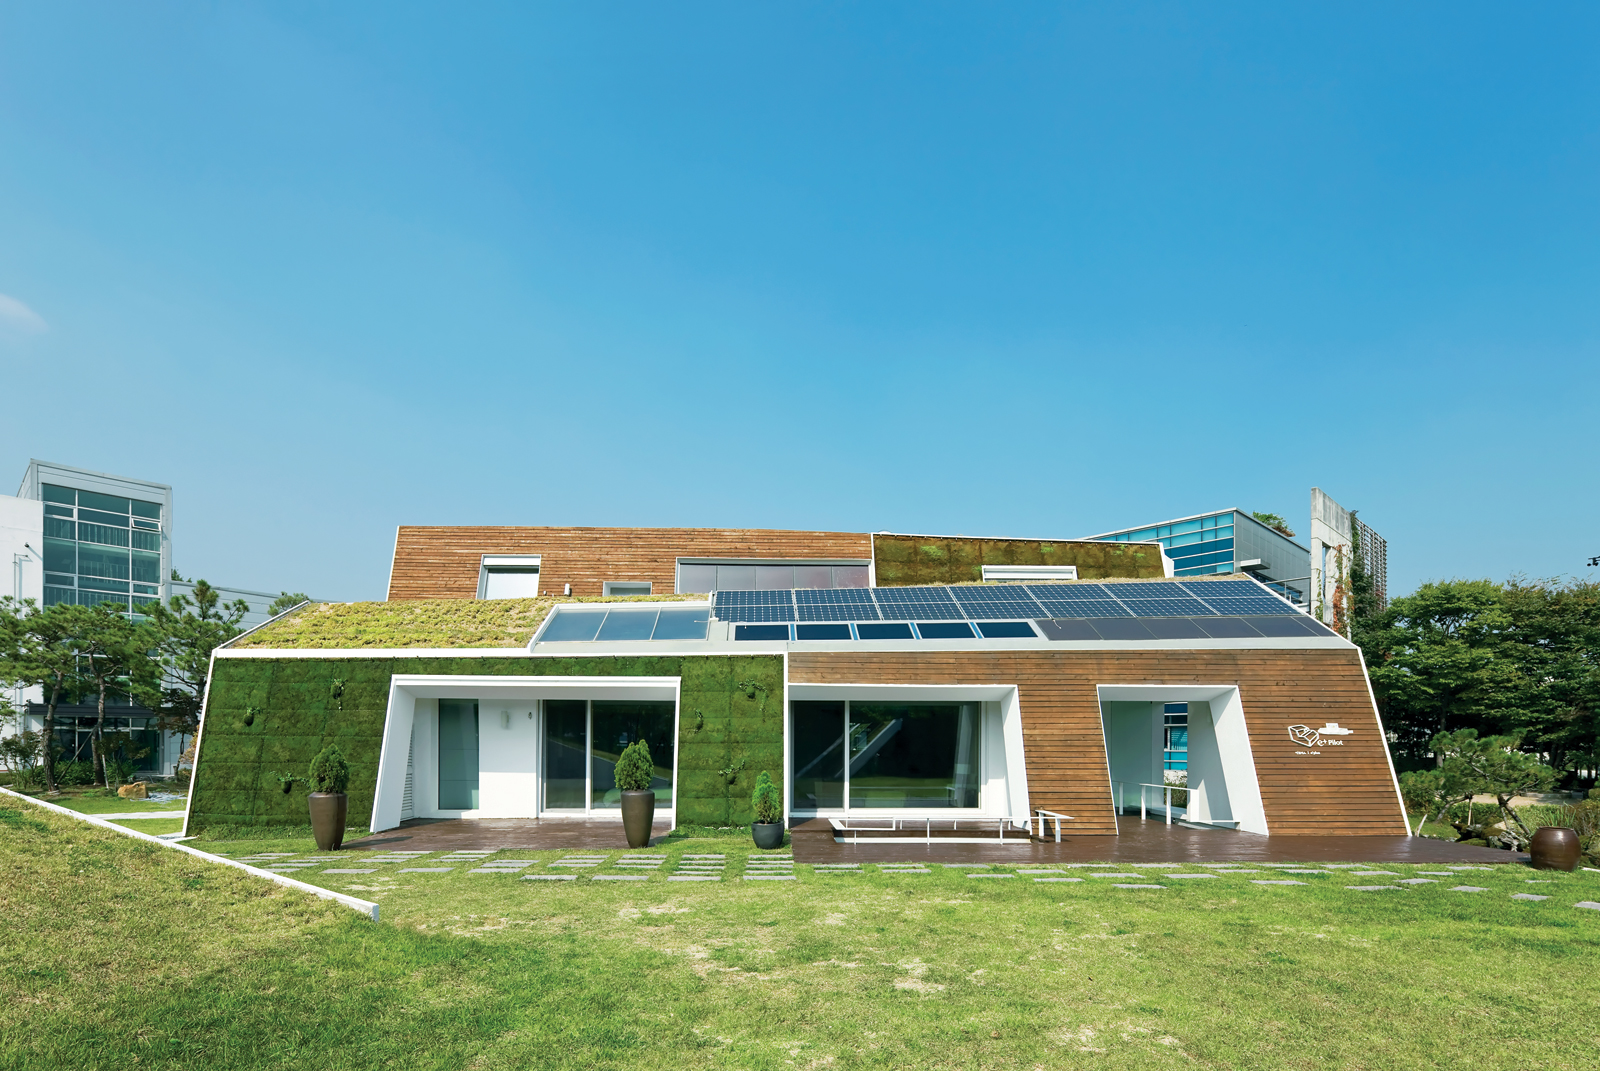 E+ Green Home in Seoul, South Korea